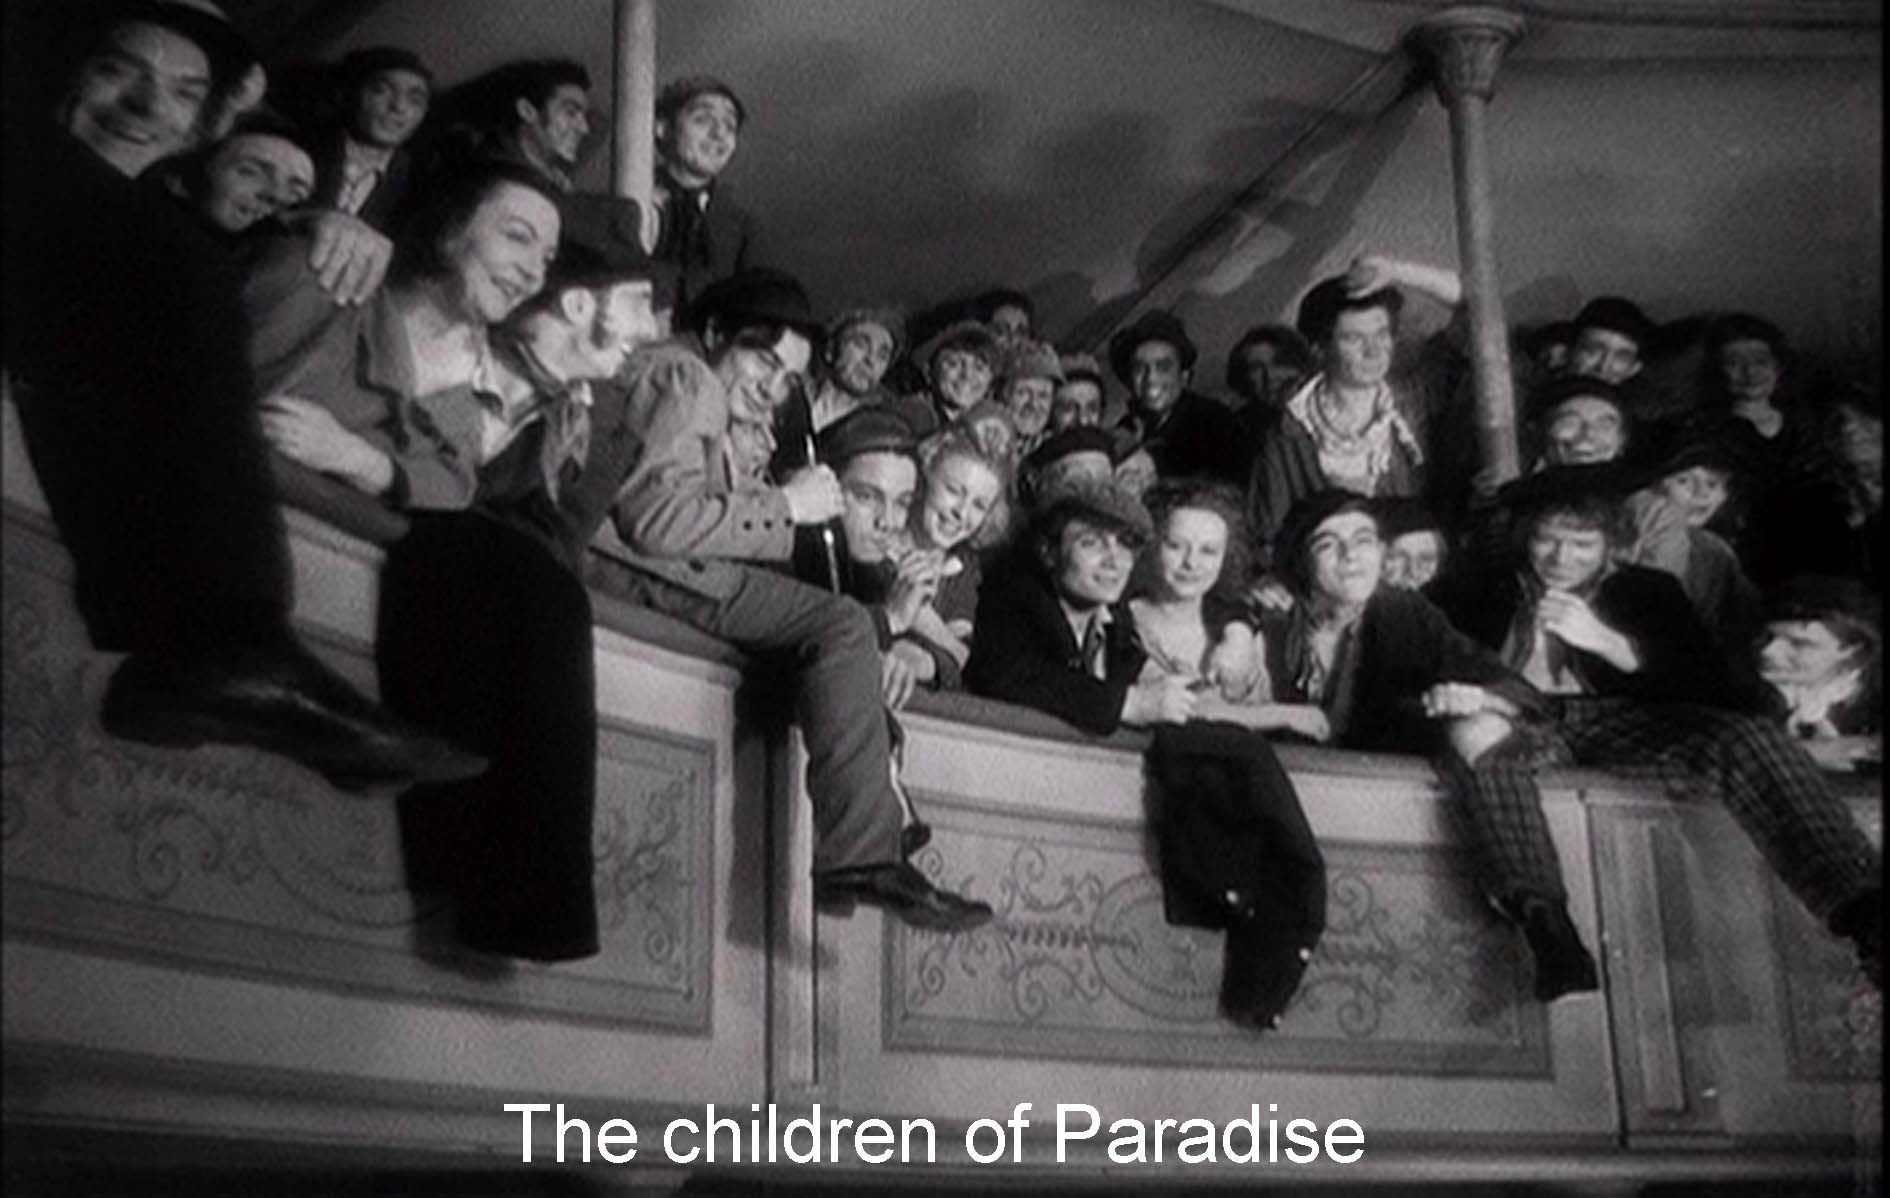 The children of Paradise